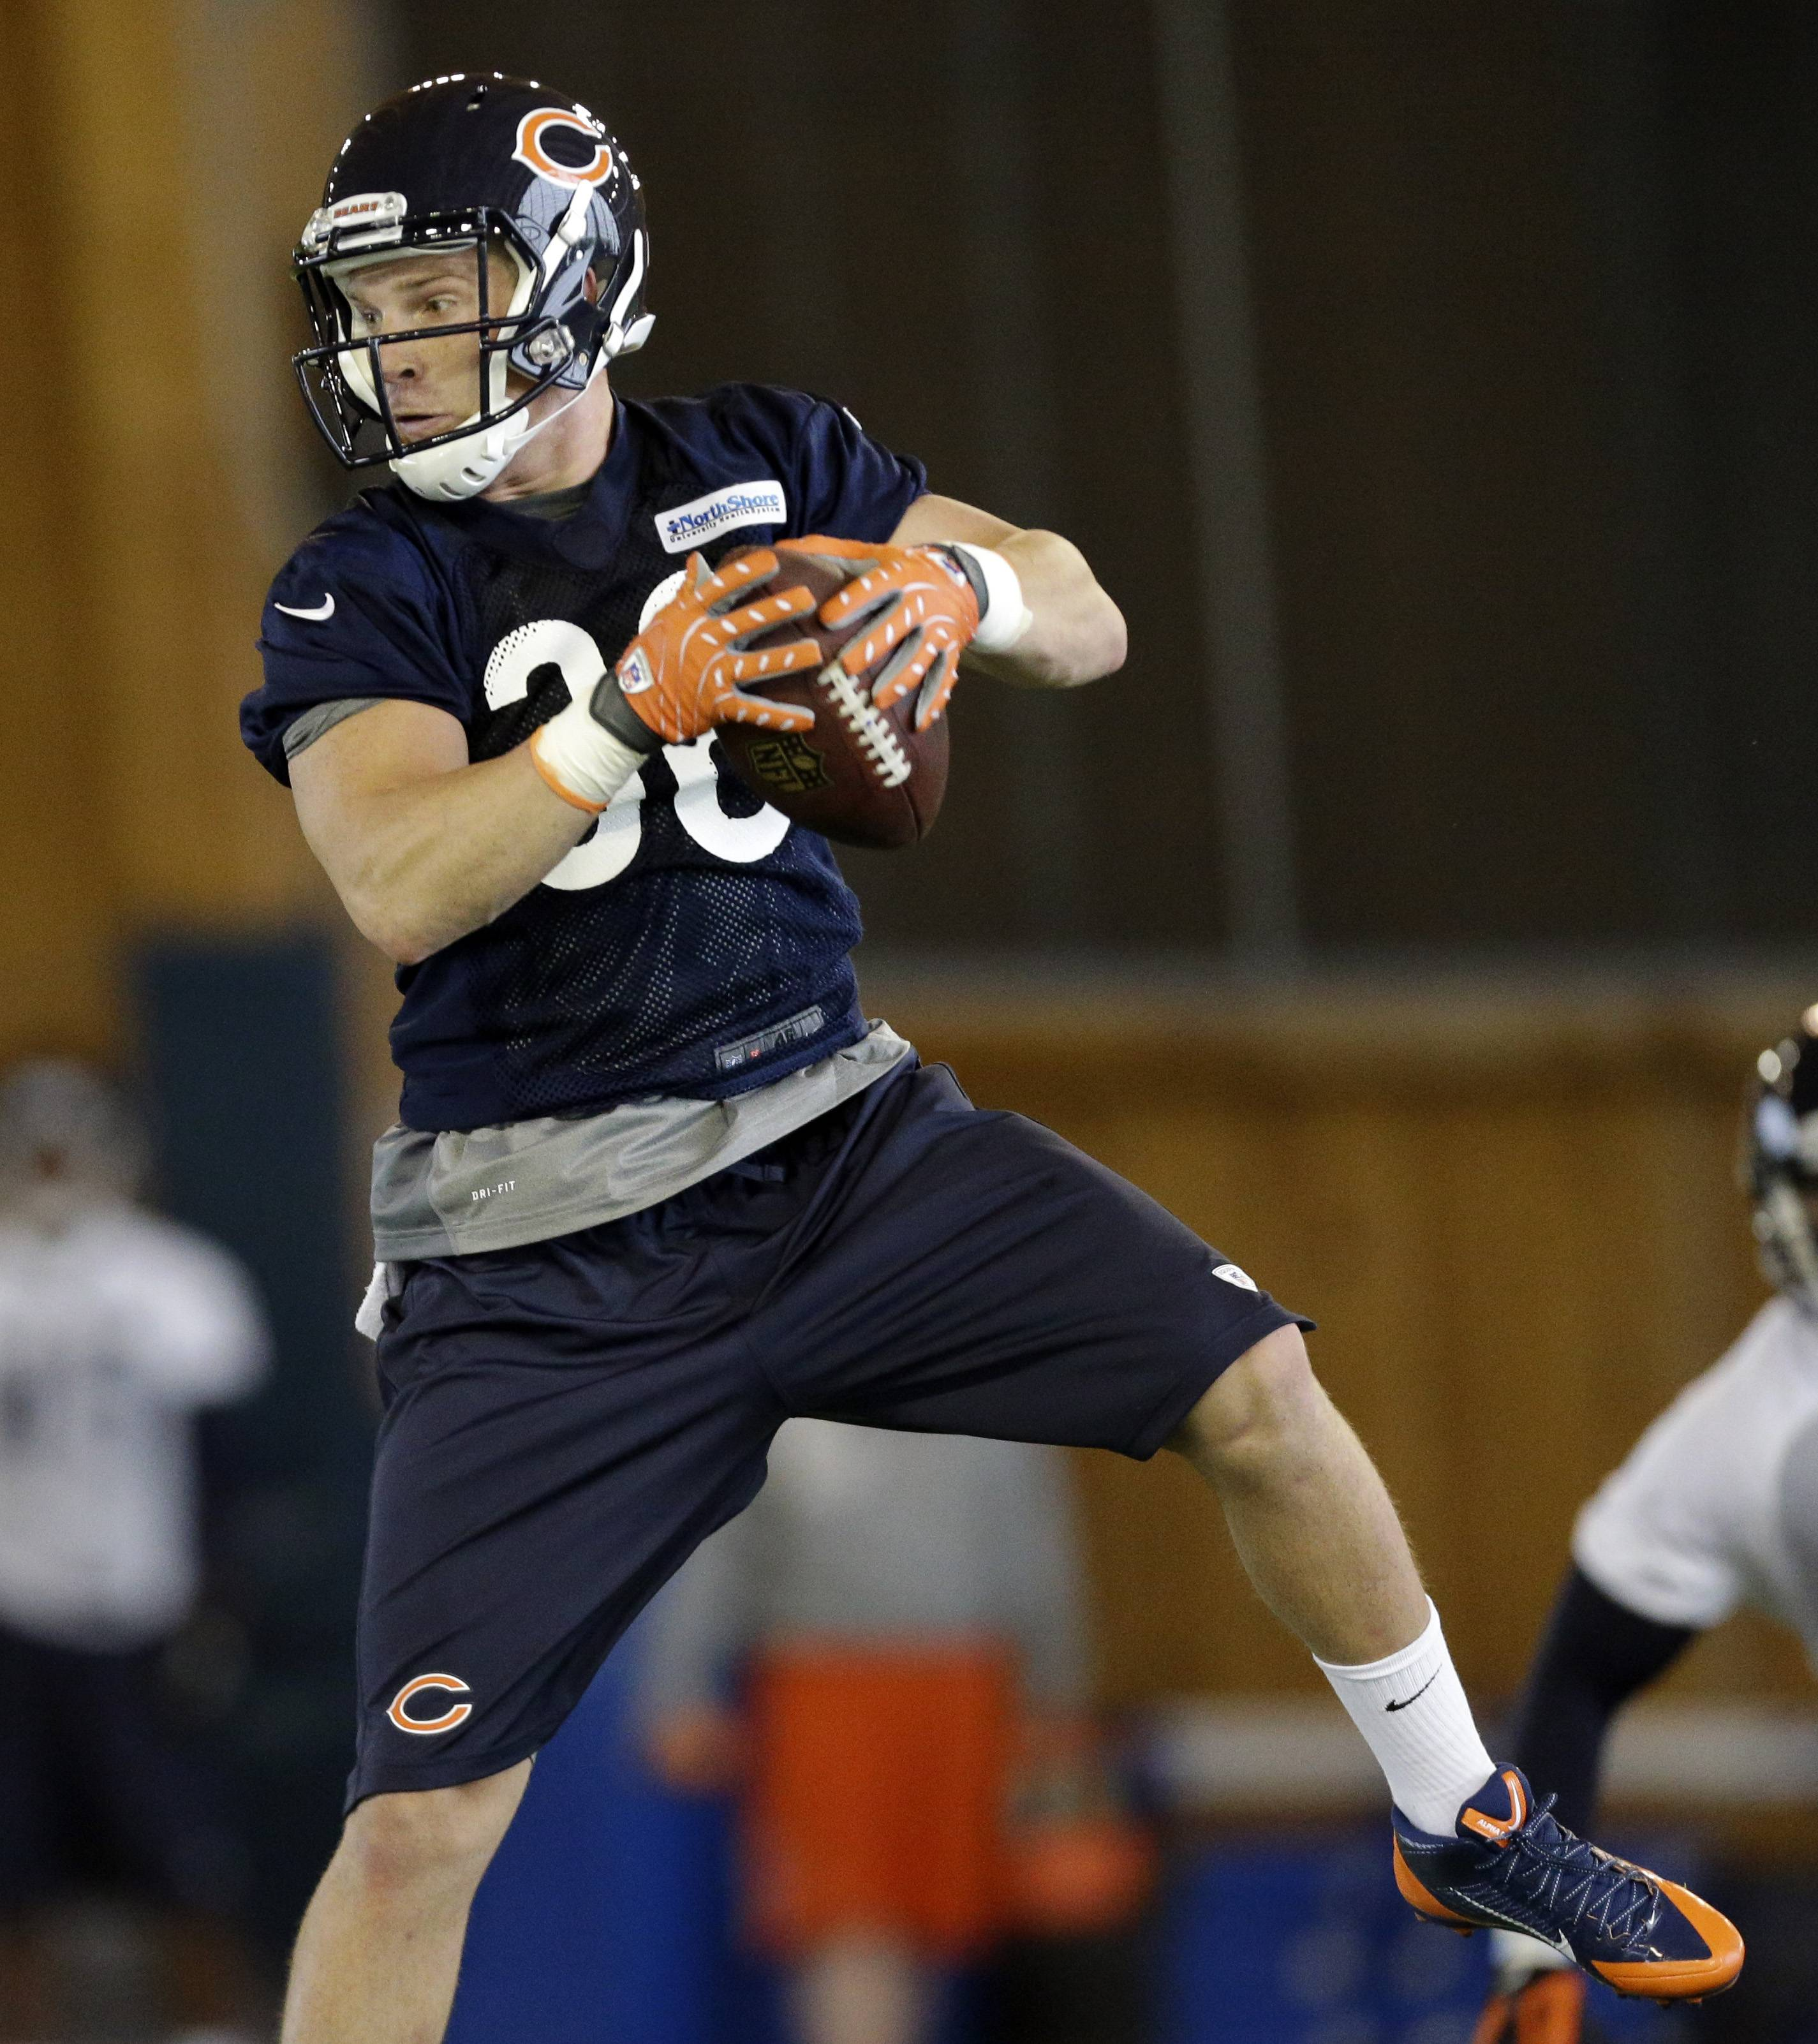 Bears running back Jordan Lynch catches the ball during the NFL football team's rookie minicamp in Lake Forest, Ill., on Friday, May 16, 2014.